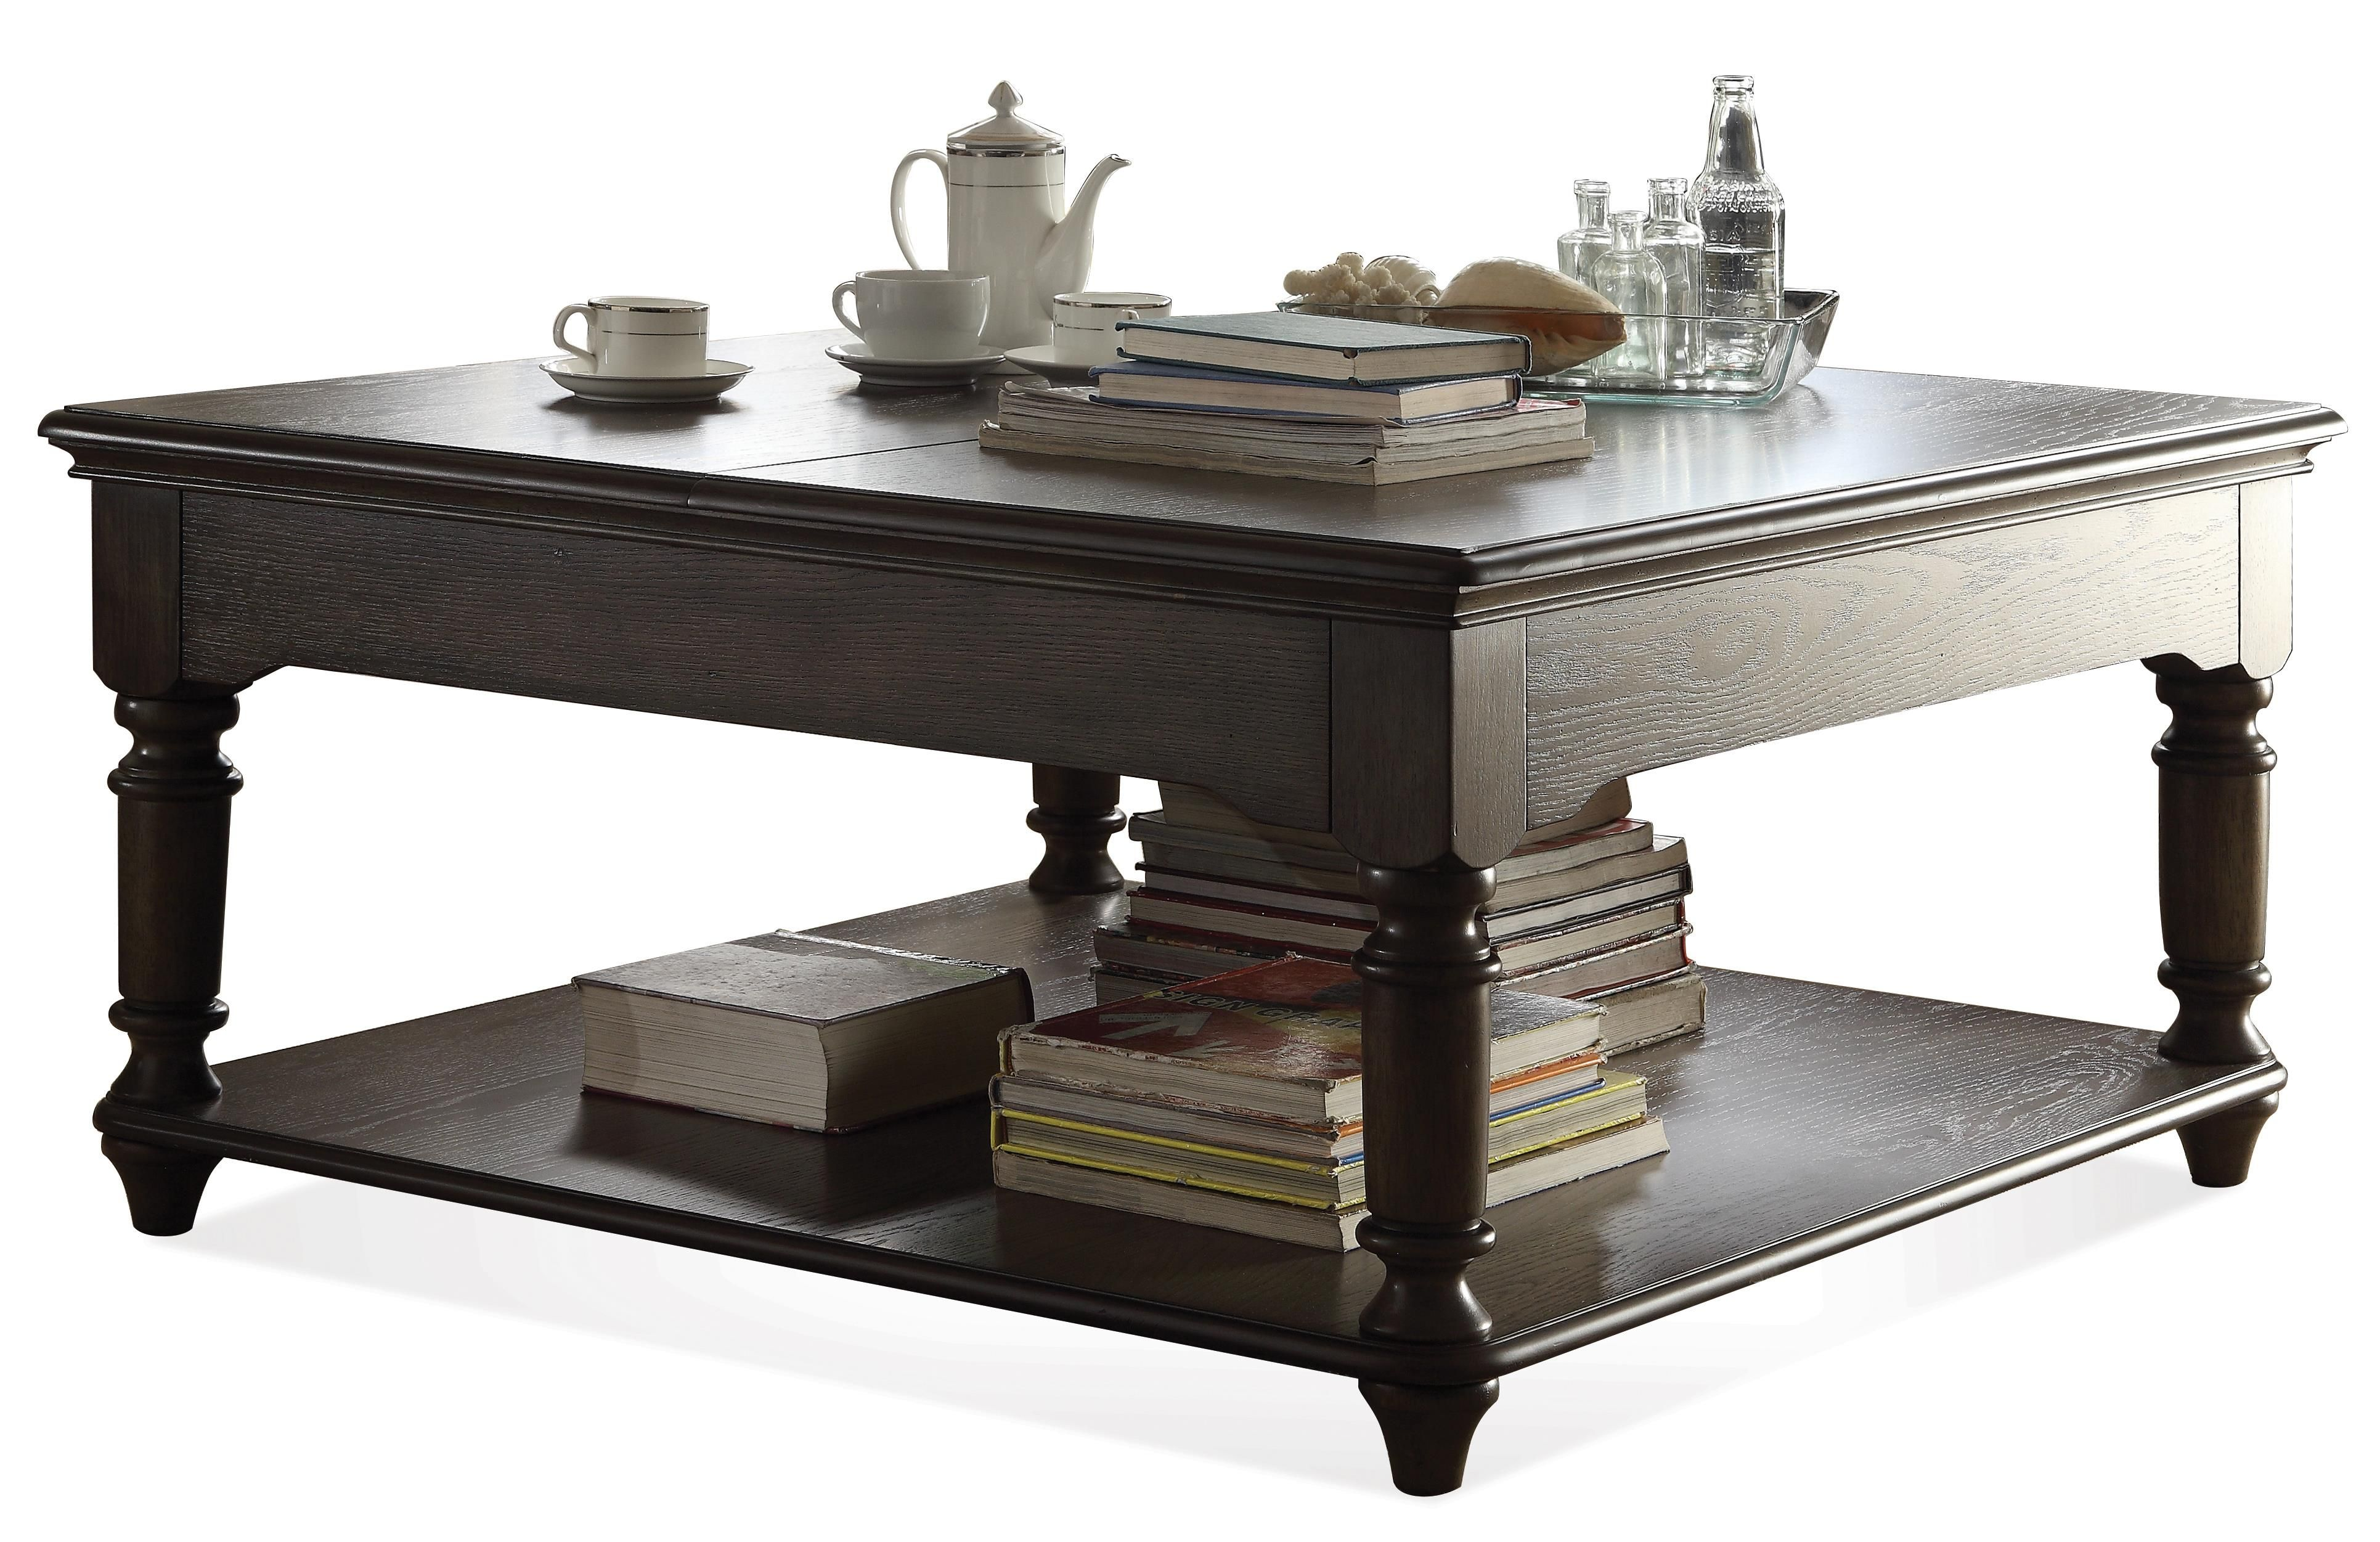 Beau Belmeade Square Lift Top Coffee Table By Riverside Furniture